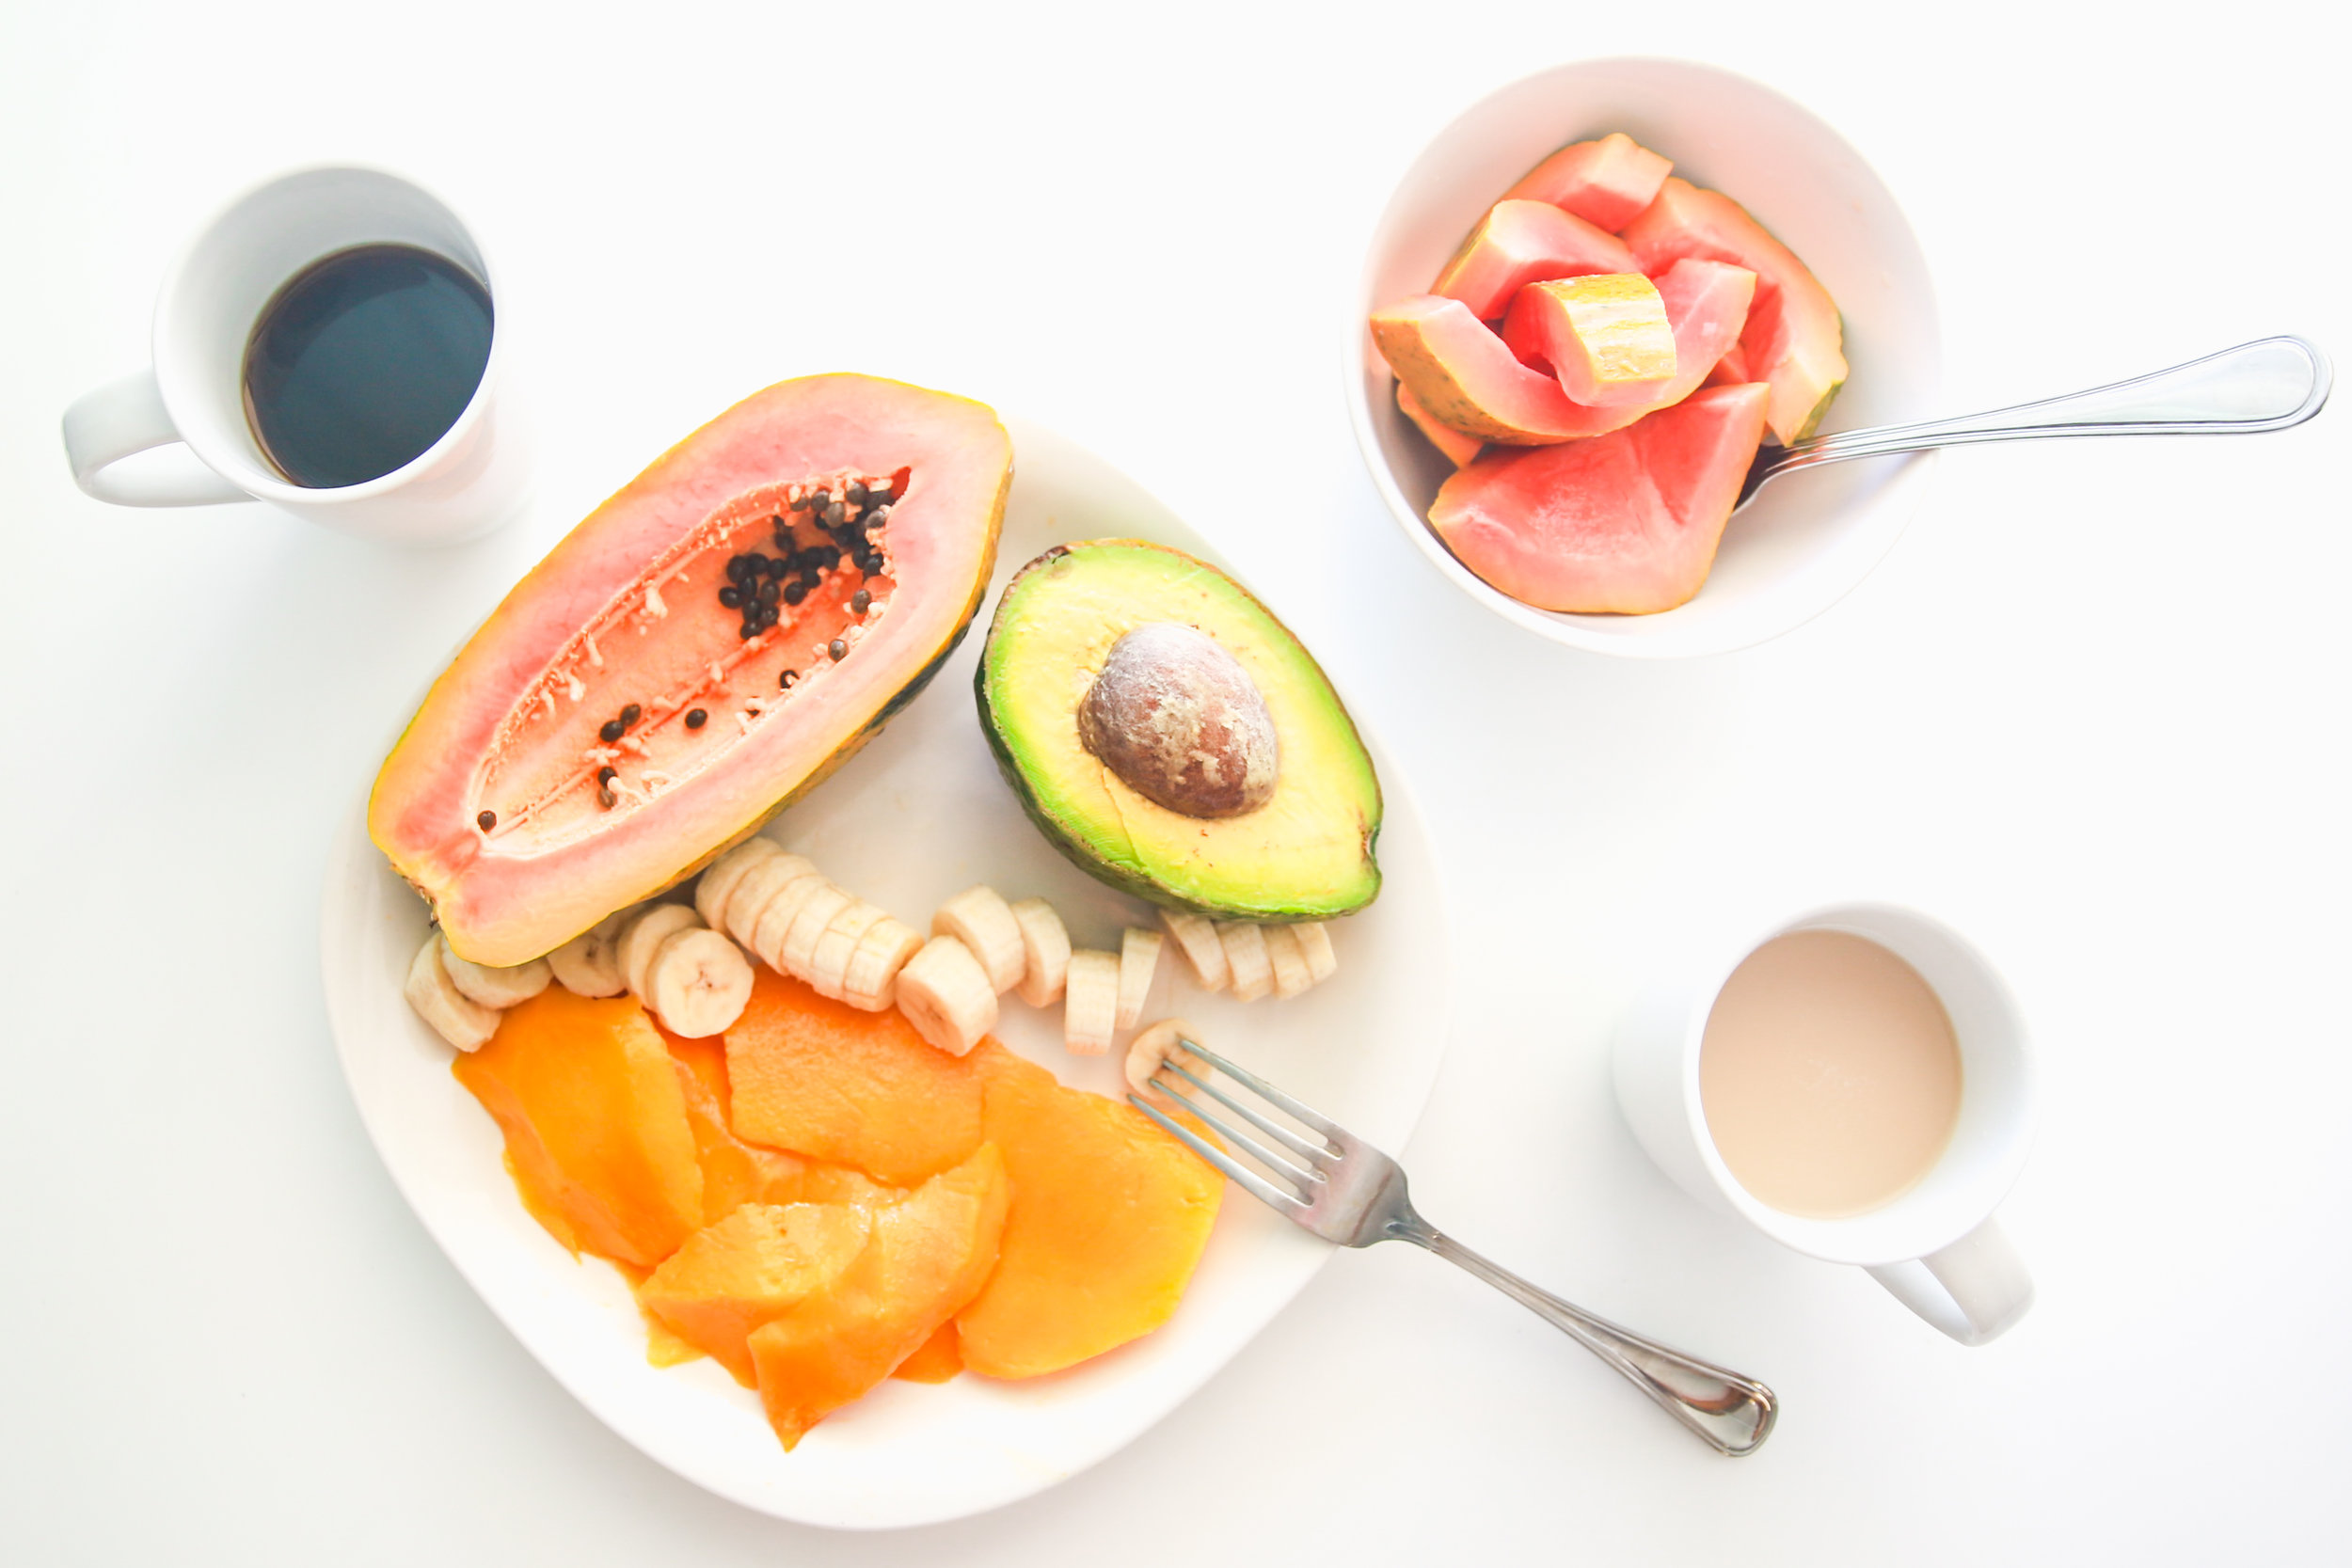 Breakfast is served! Side note, I can't live without fruit- it's my absolute favorite! Next to cheese.